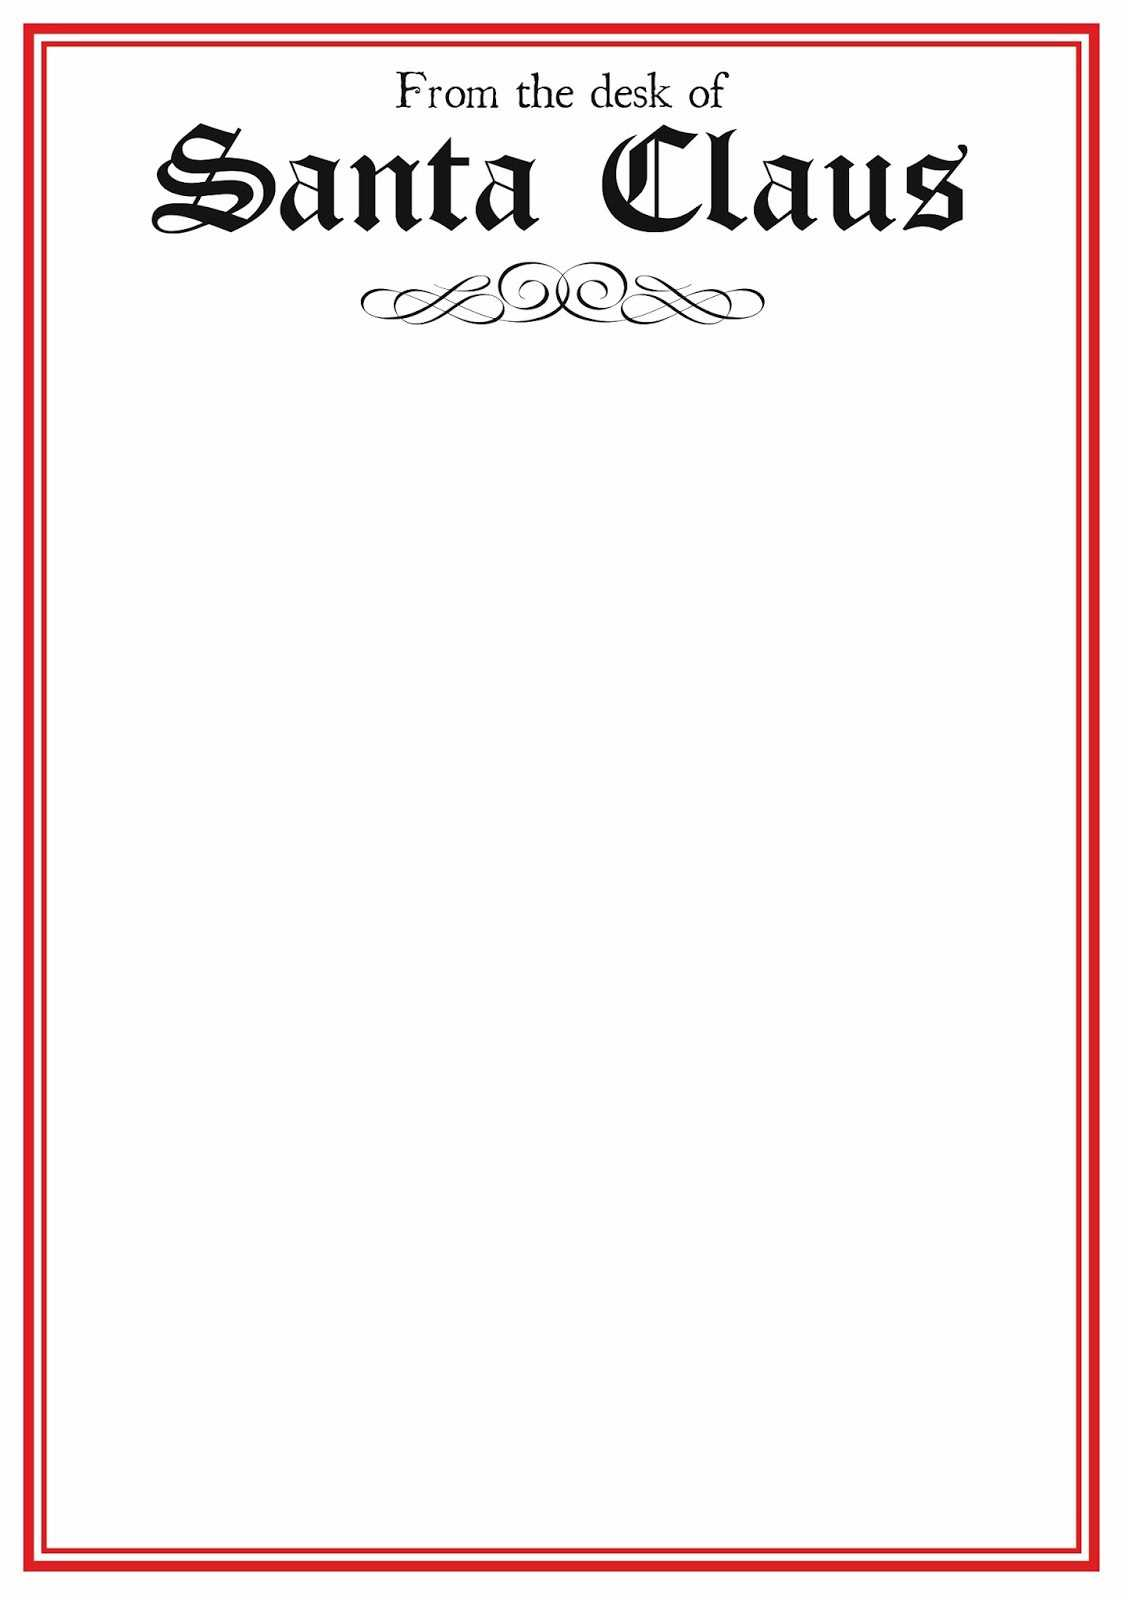 Santa Templates Free - Dalep.midnightpig.co With Regard To Letter From Santa Template Word